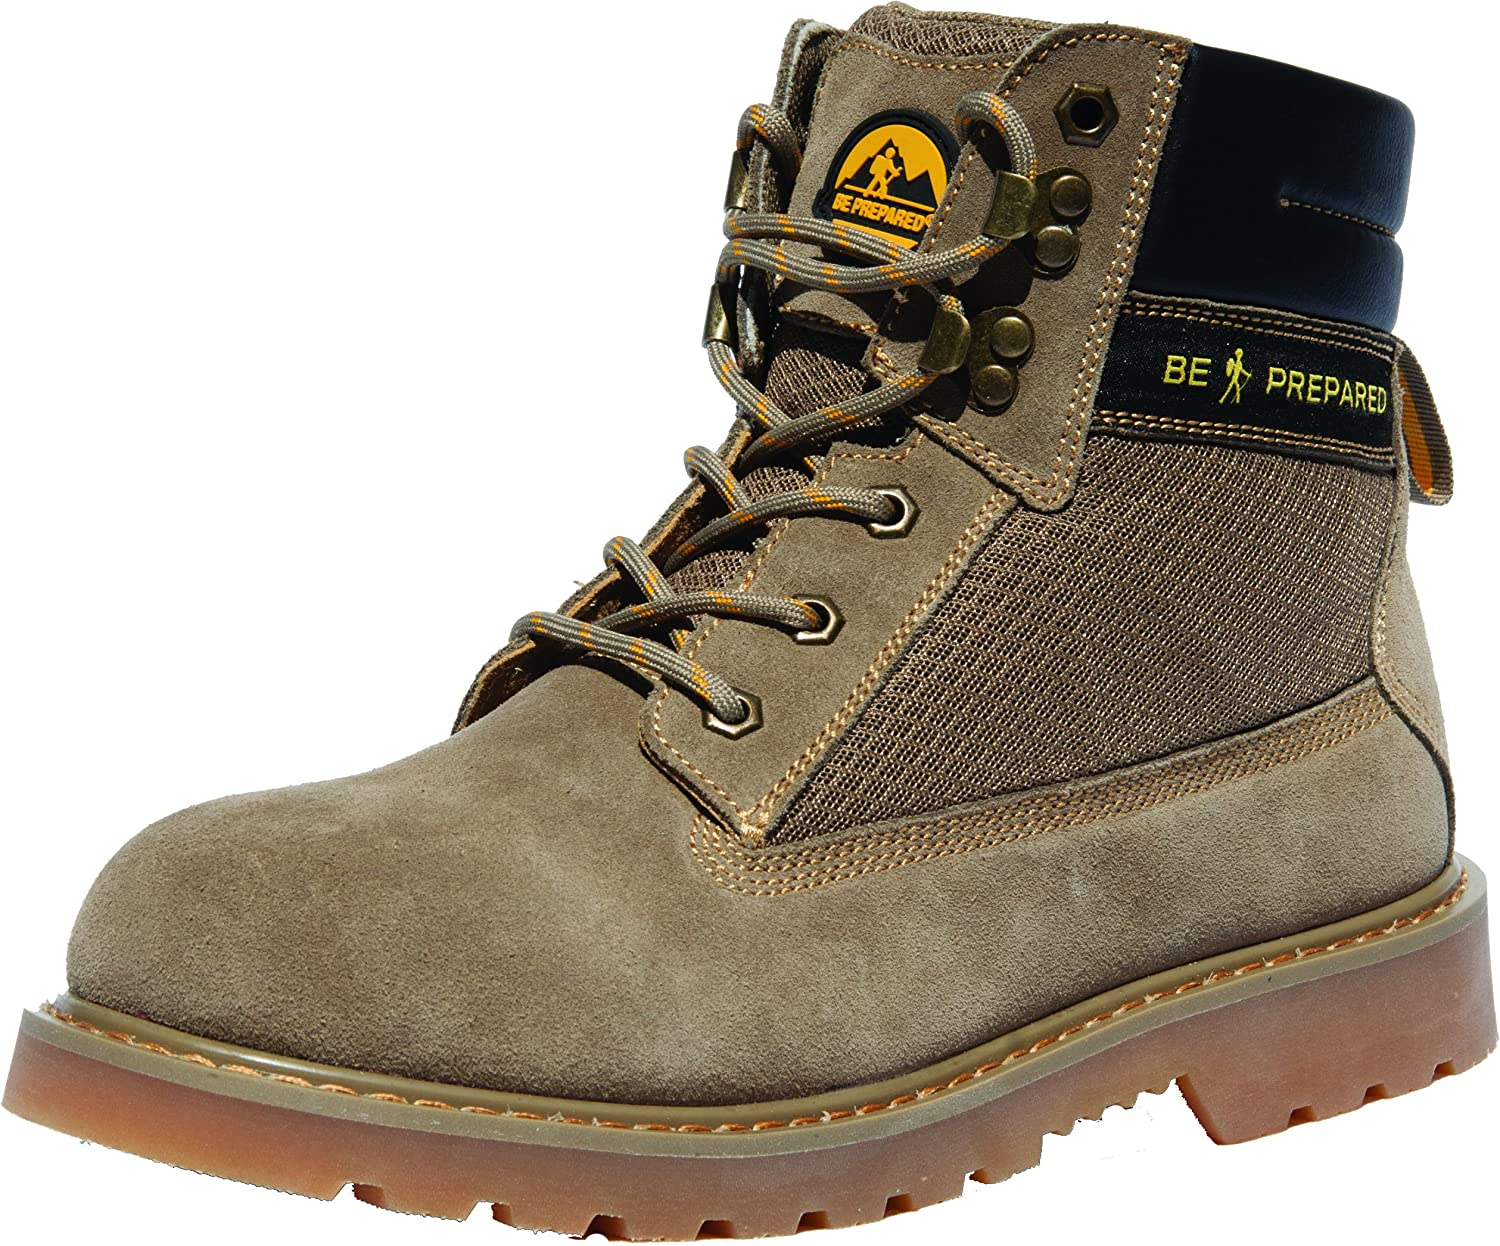 Boy Scouts of America Outdoor Heavy-Duty Work Boot Scout Pro